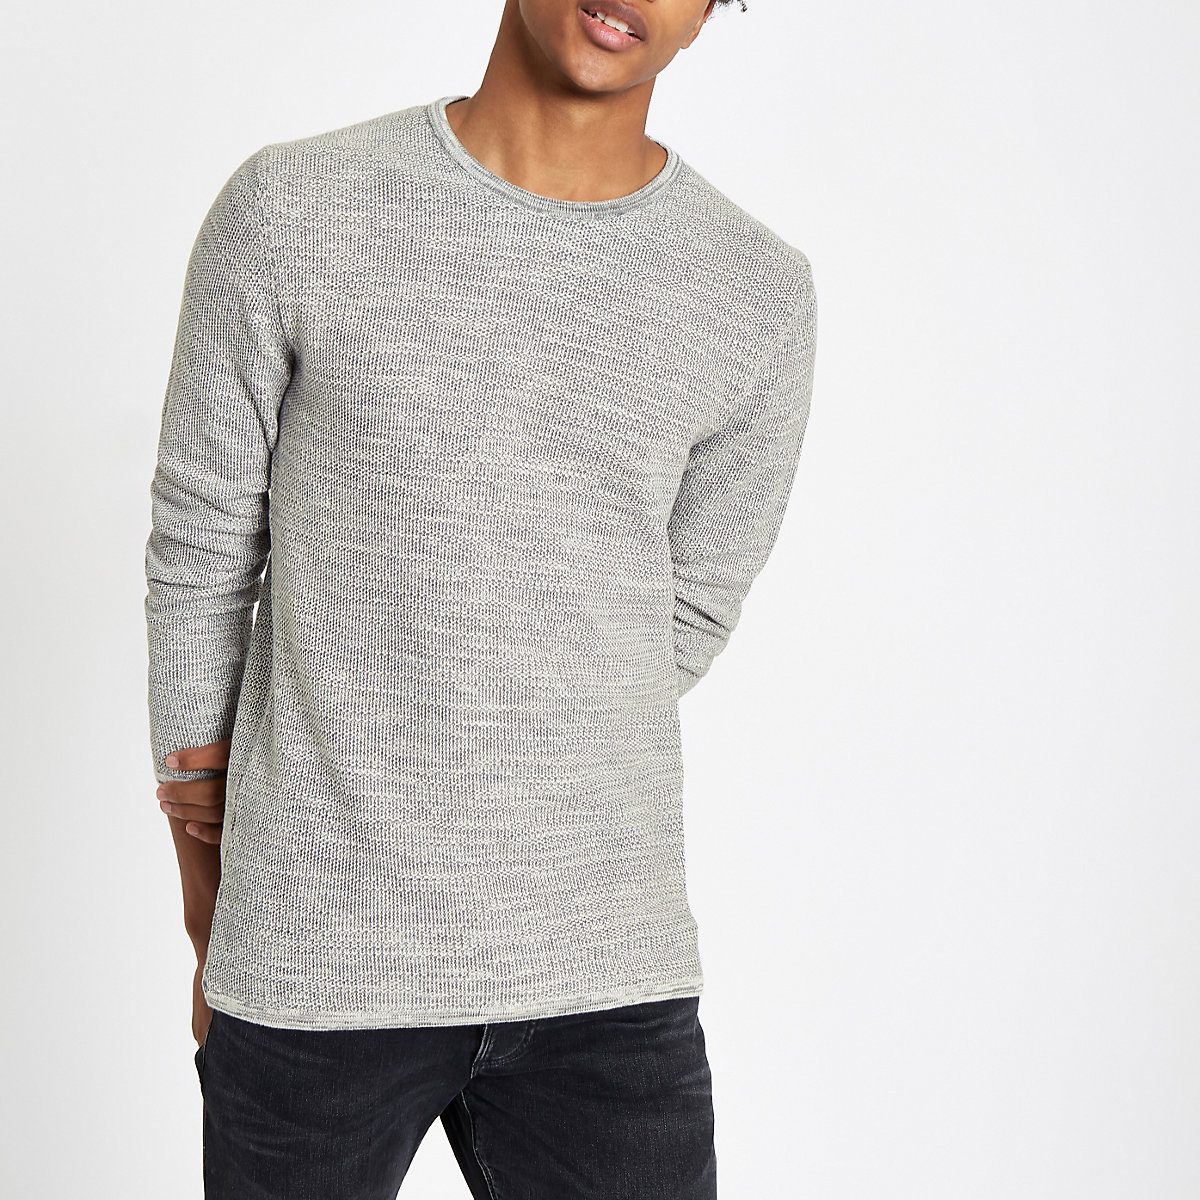 Minimum grey crew neck jumper